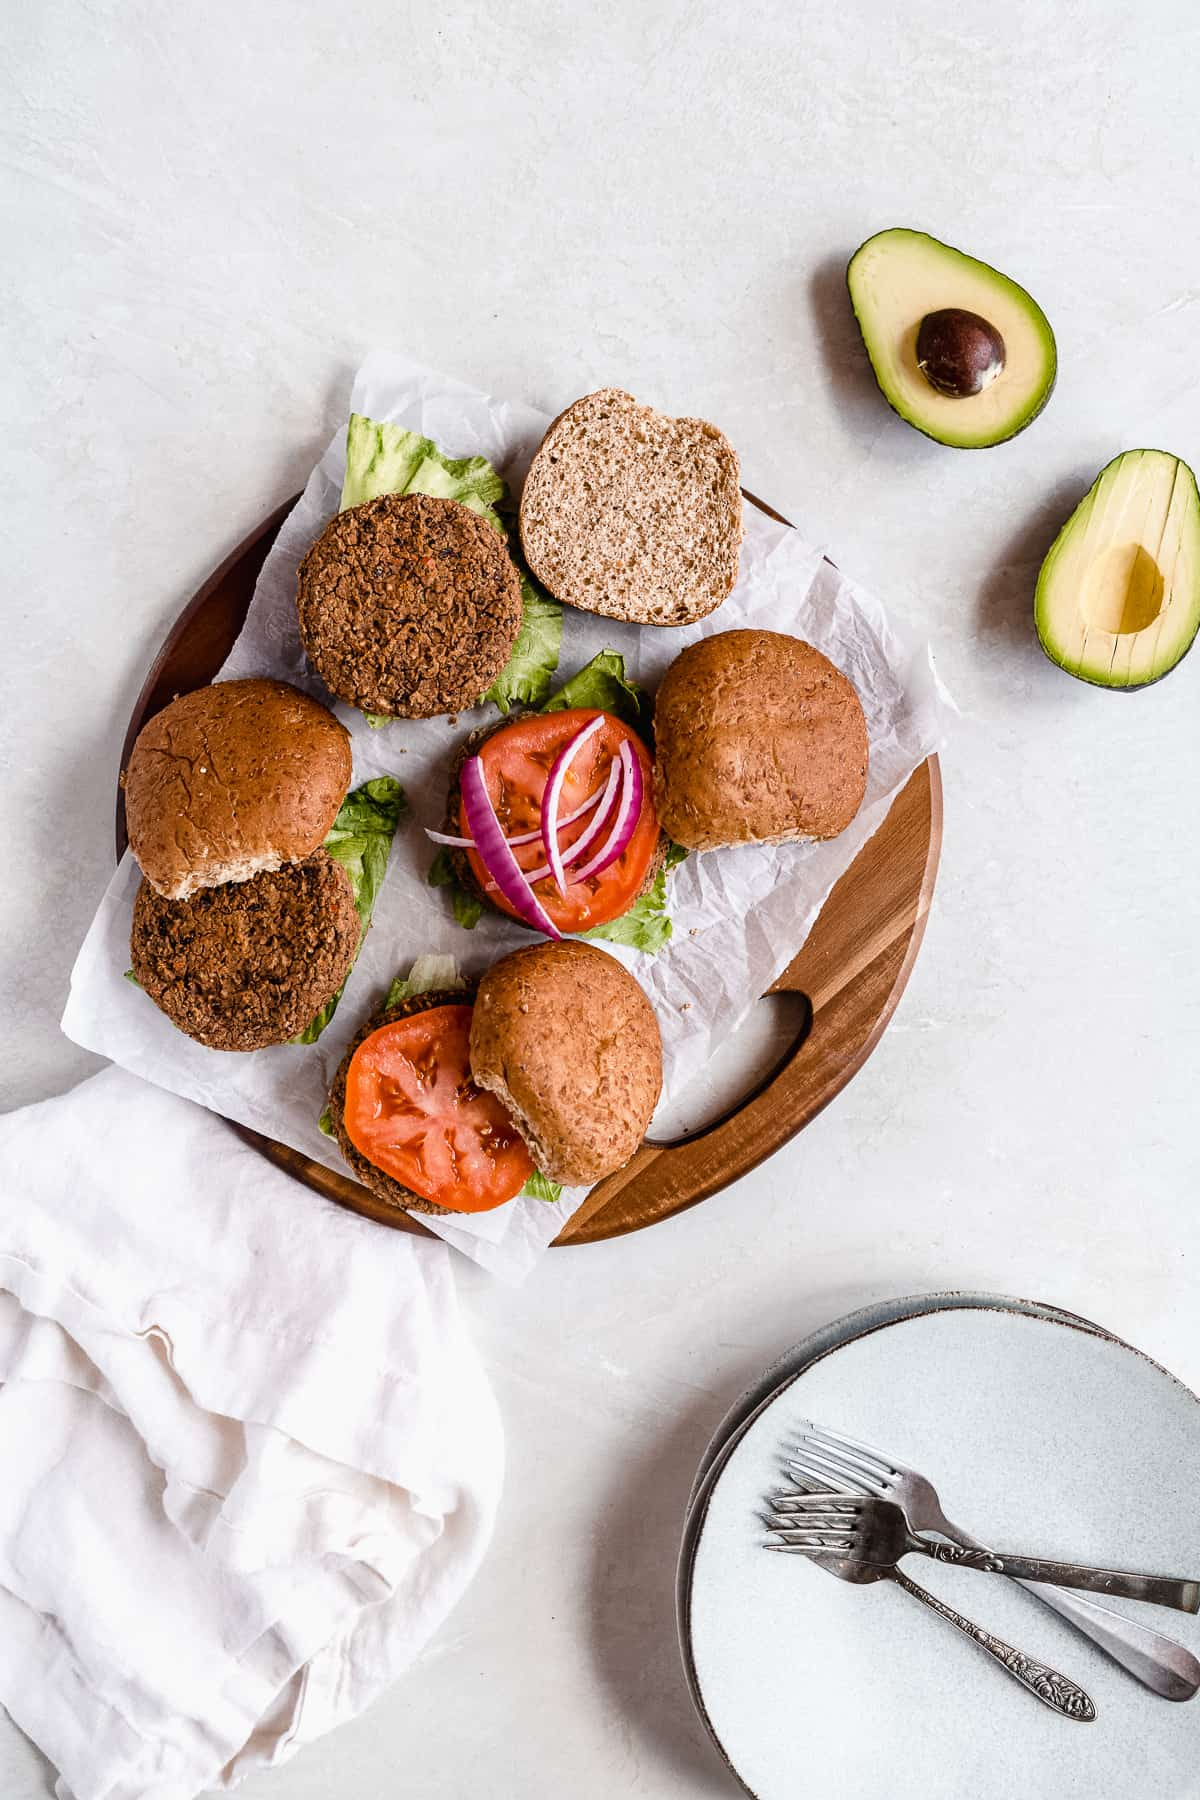 Overhead photo of the buns, tomatoes, avocados and onions arranged on parchment paper on a wooden tray in the process of being built into sandwiches.